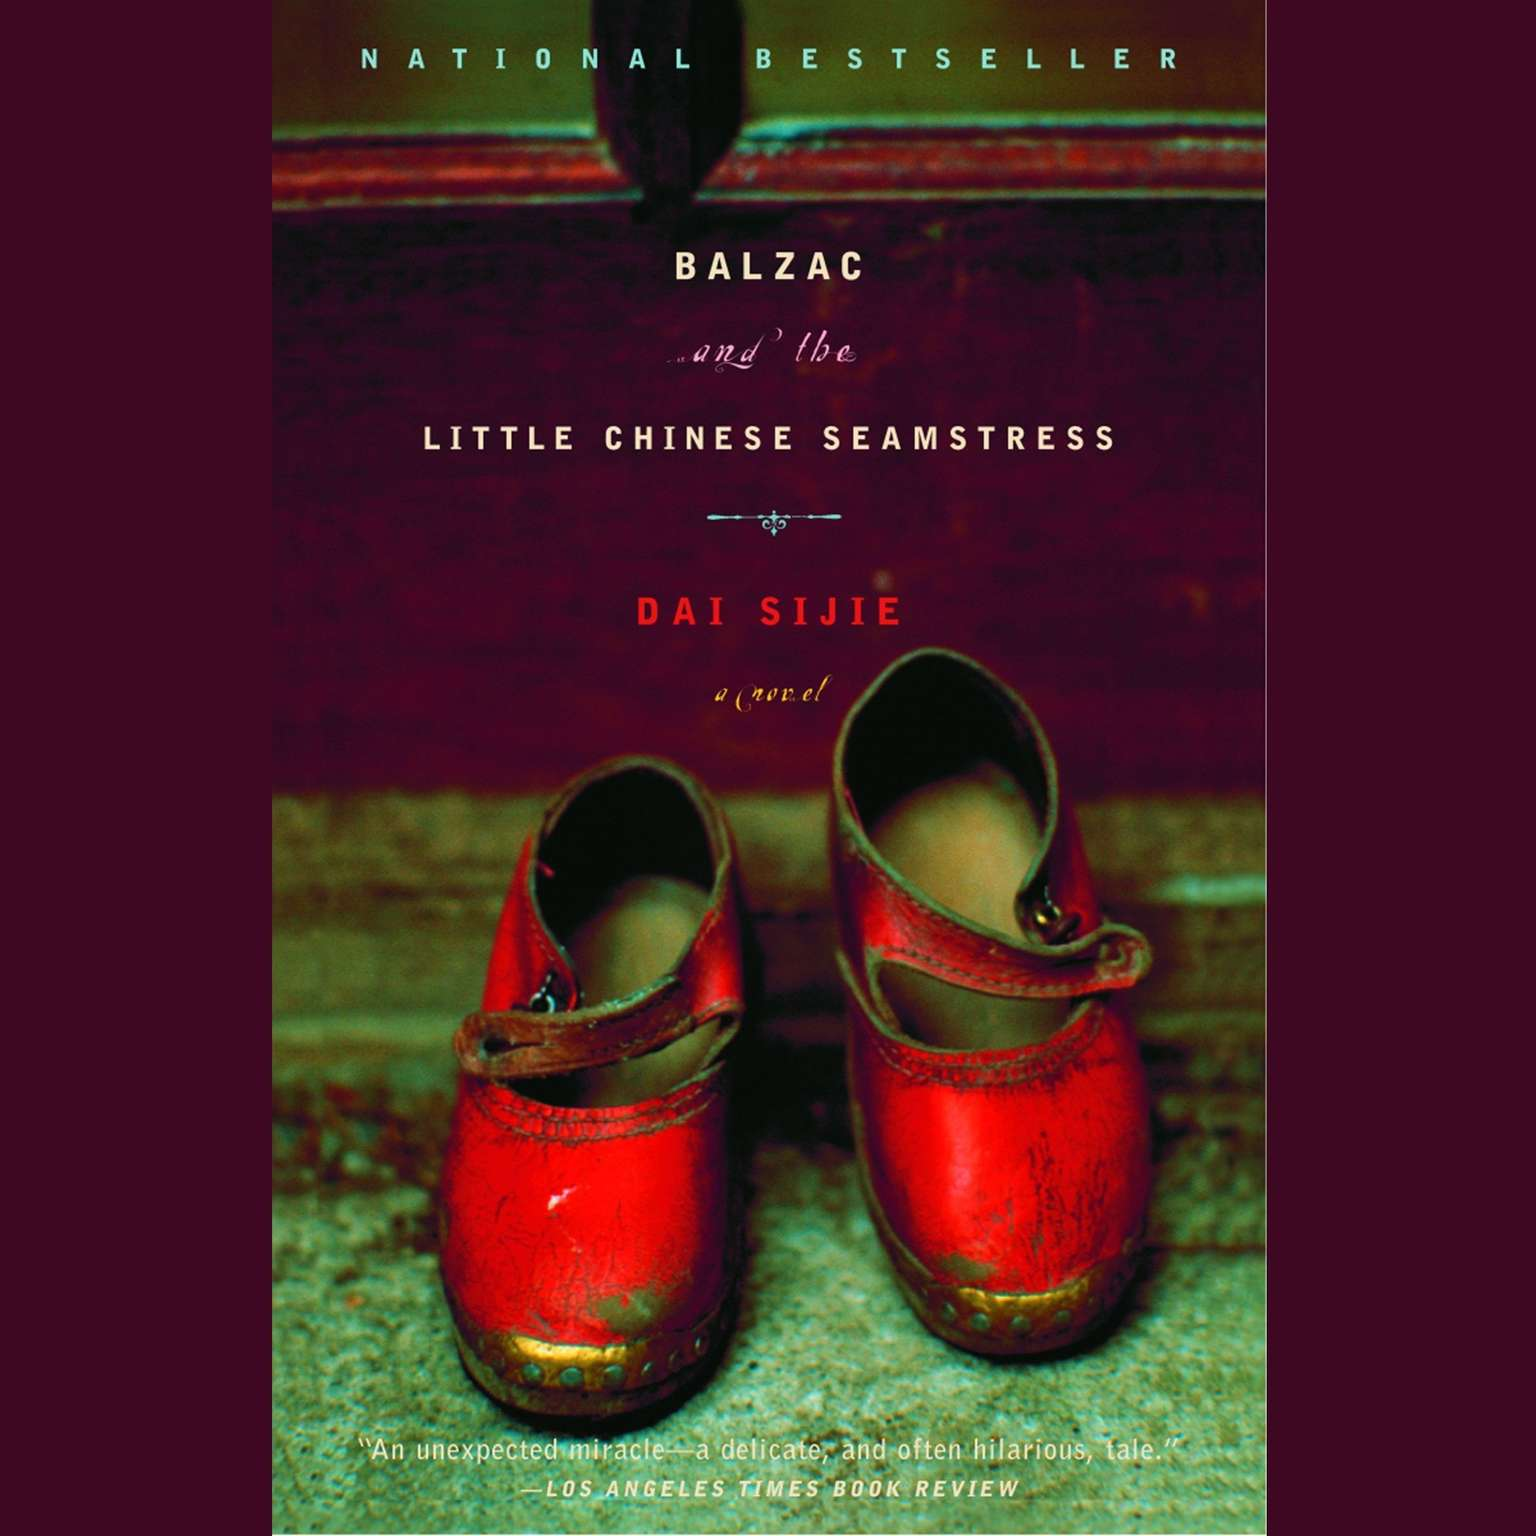 balzac and the chinese seamstress Meet the author dai sijie balzac and the little chinese seamstress is sijie's first novel and is also semi - autobiographical of his life born in china in 1954, sijie lived through the.